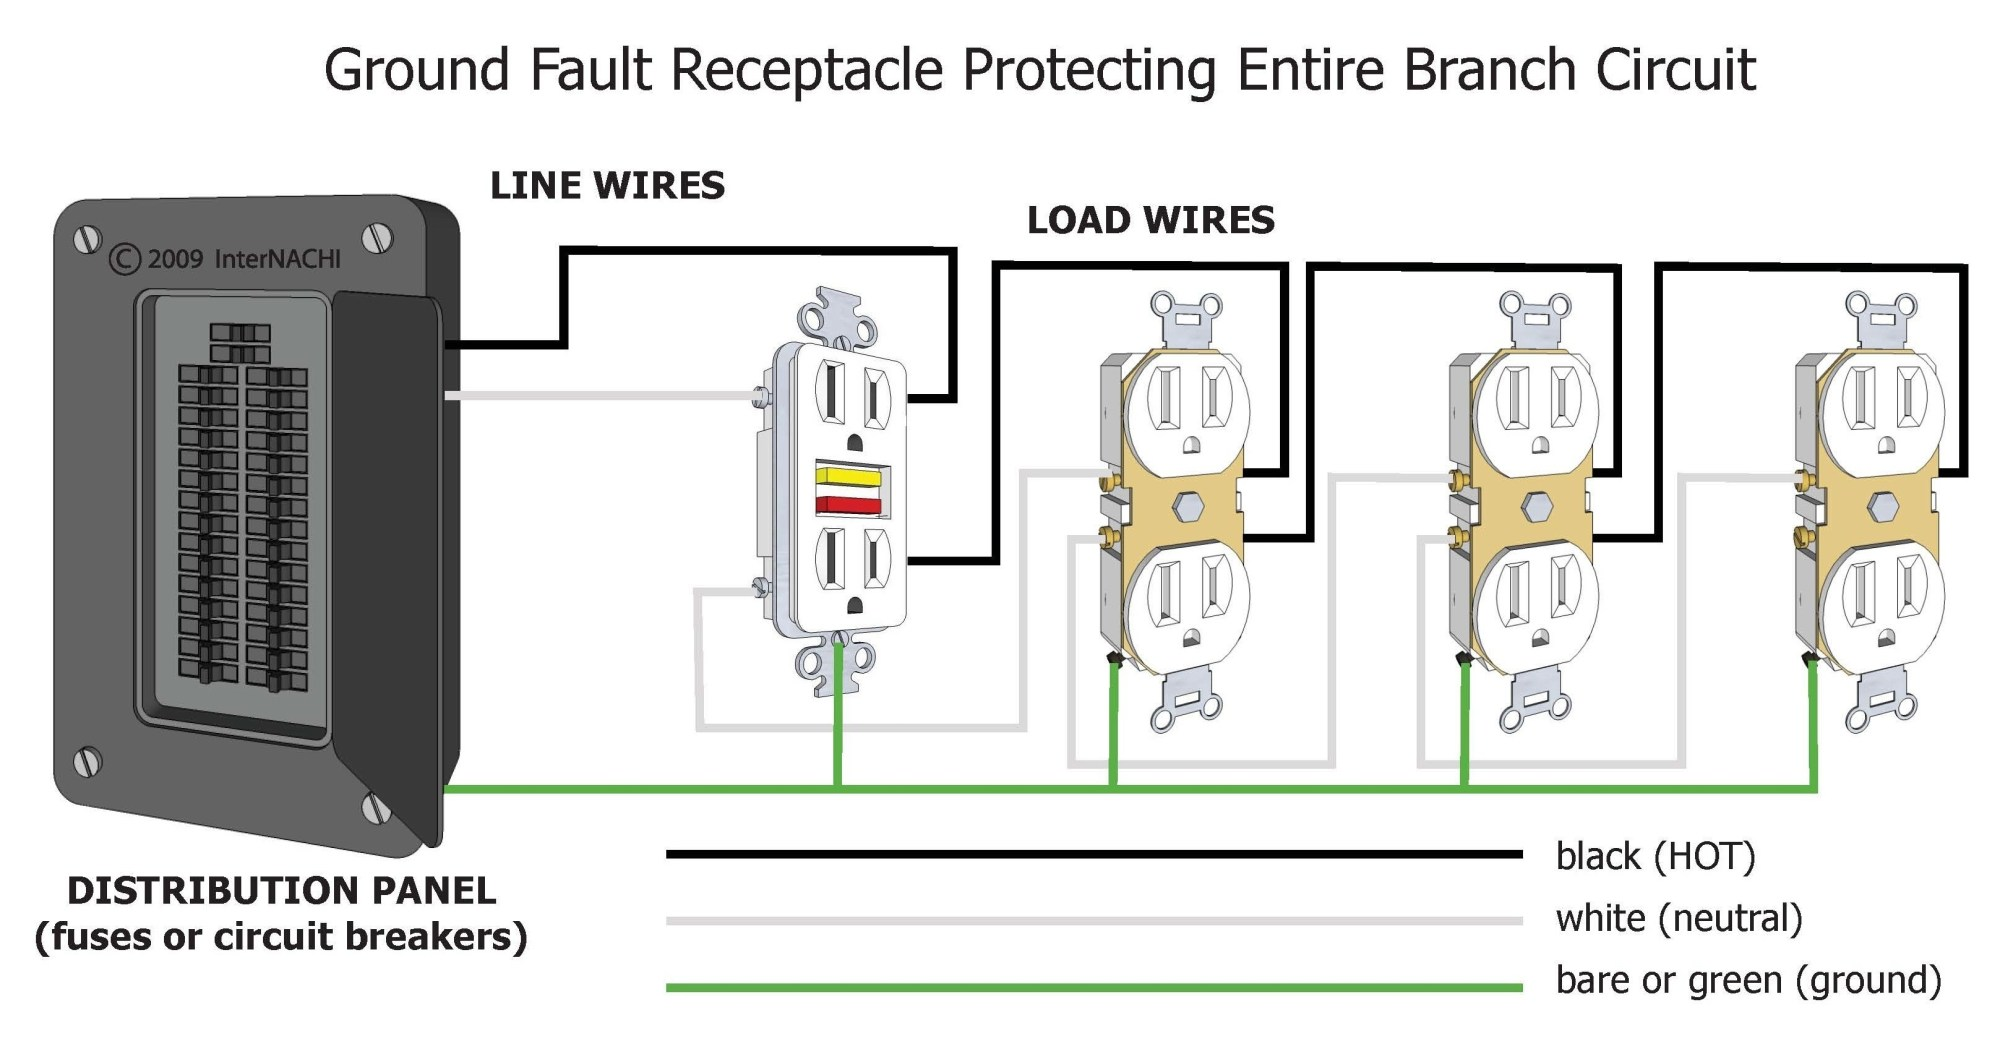 hight resolution of leviton gfci receptacle wiring diagram leviton gfci wiring diagram new gfci wiring diagram without ground